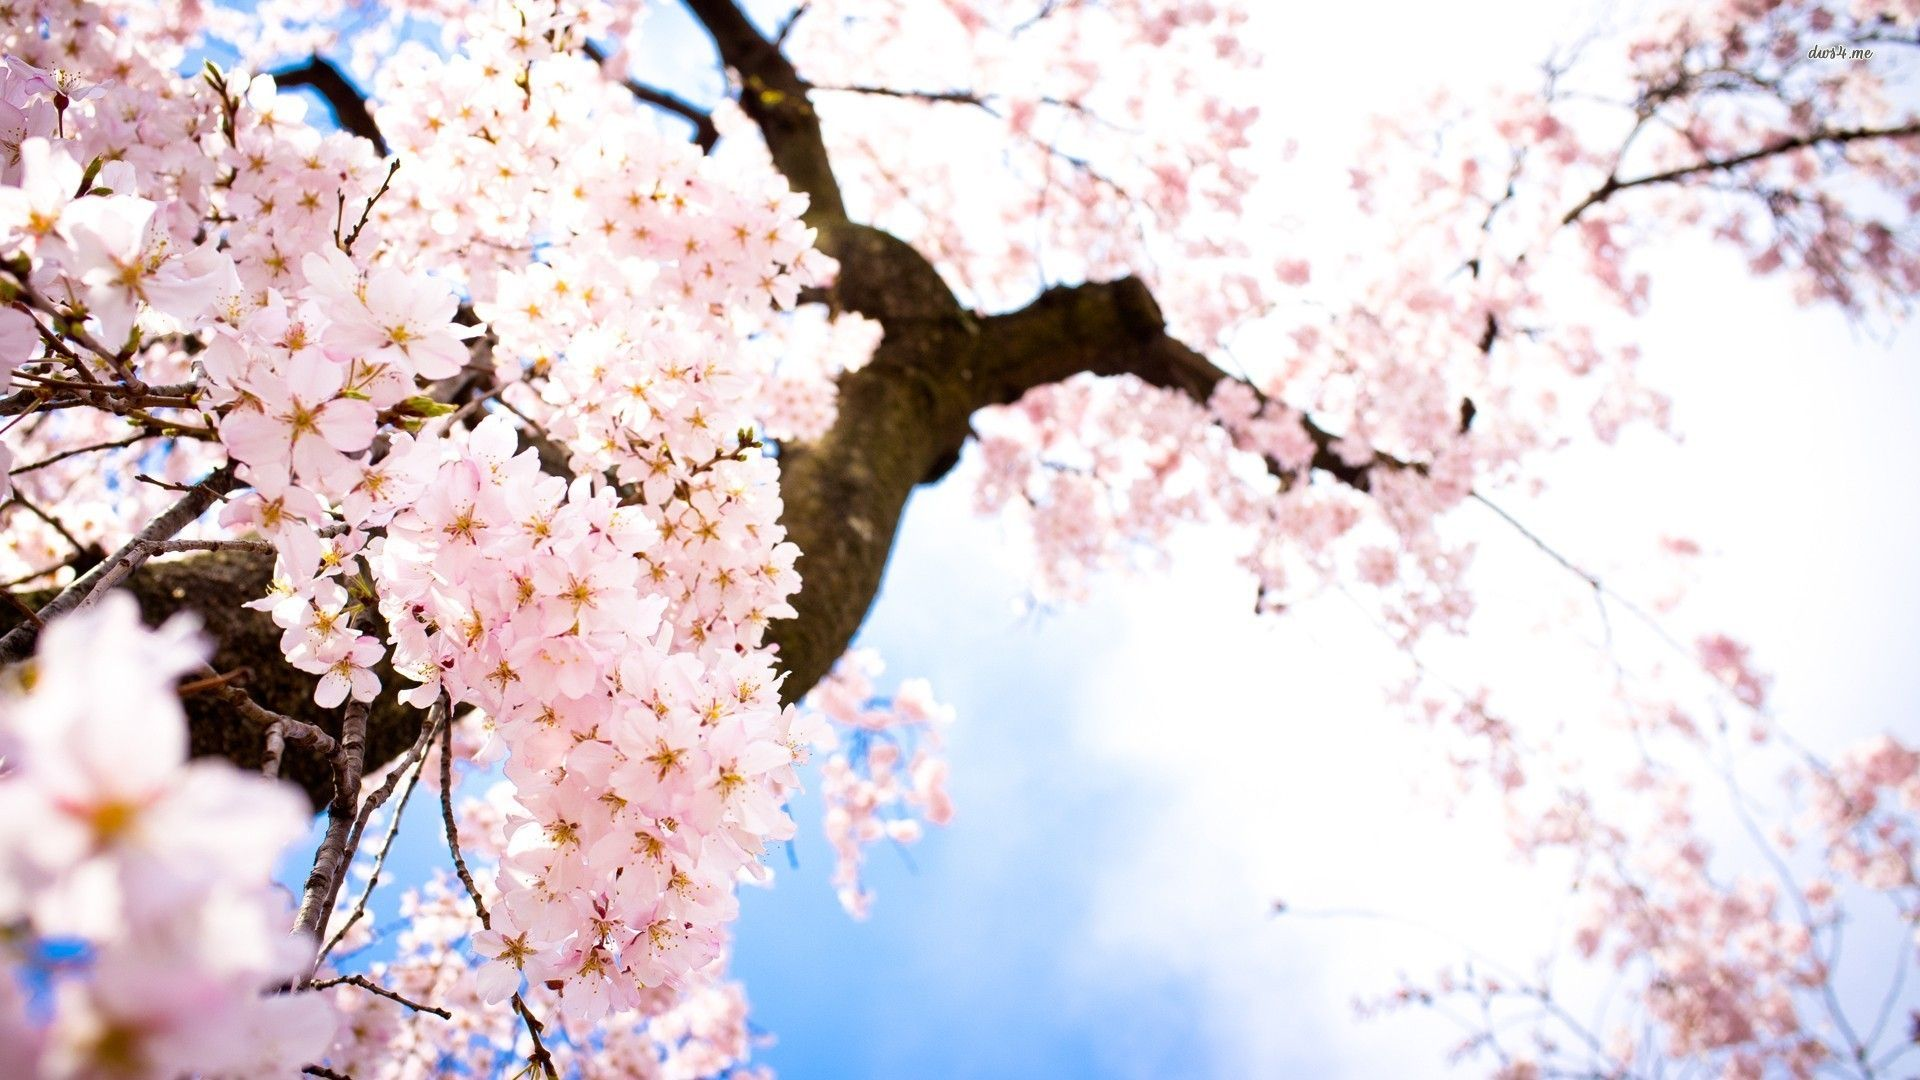 Cherry Blossoms Hd Wallpaper Cherry Blossom Wallpaper Anime Cherry Blossom Cherry Blossom Painting